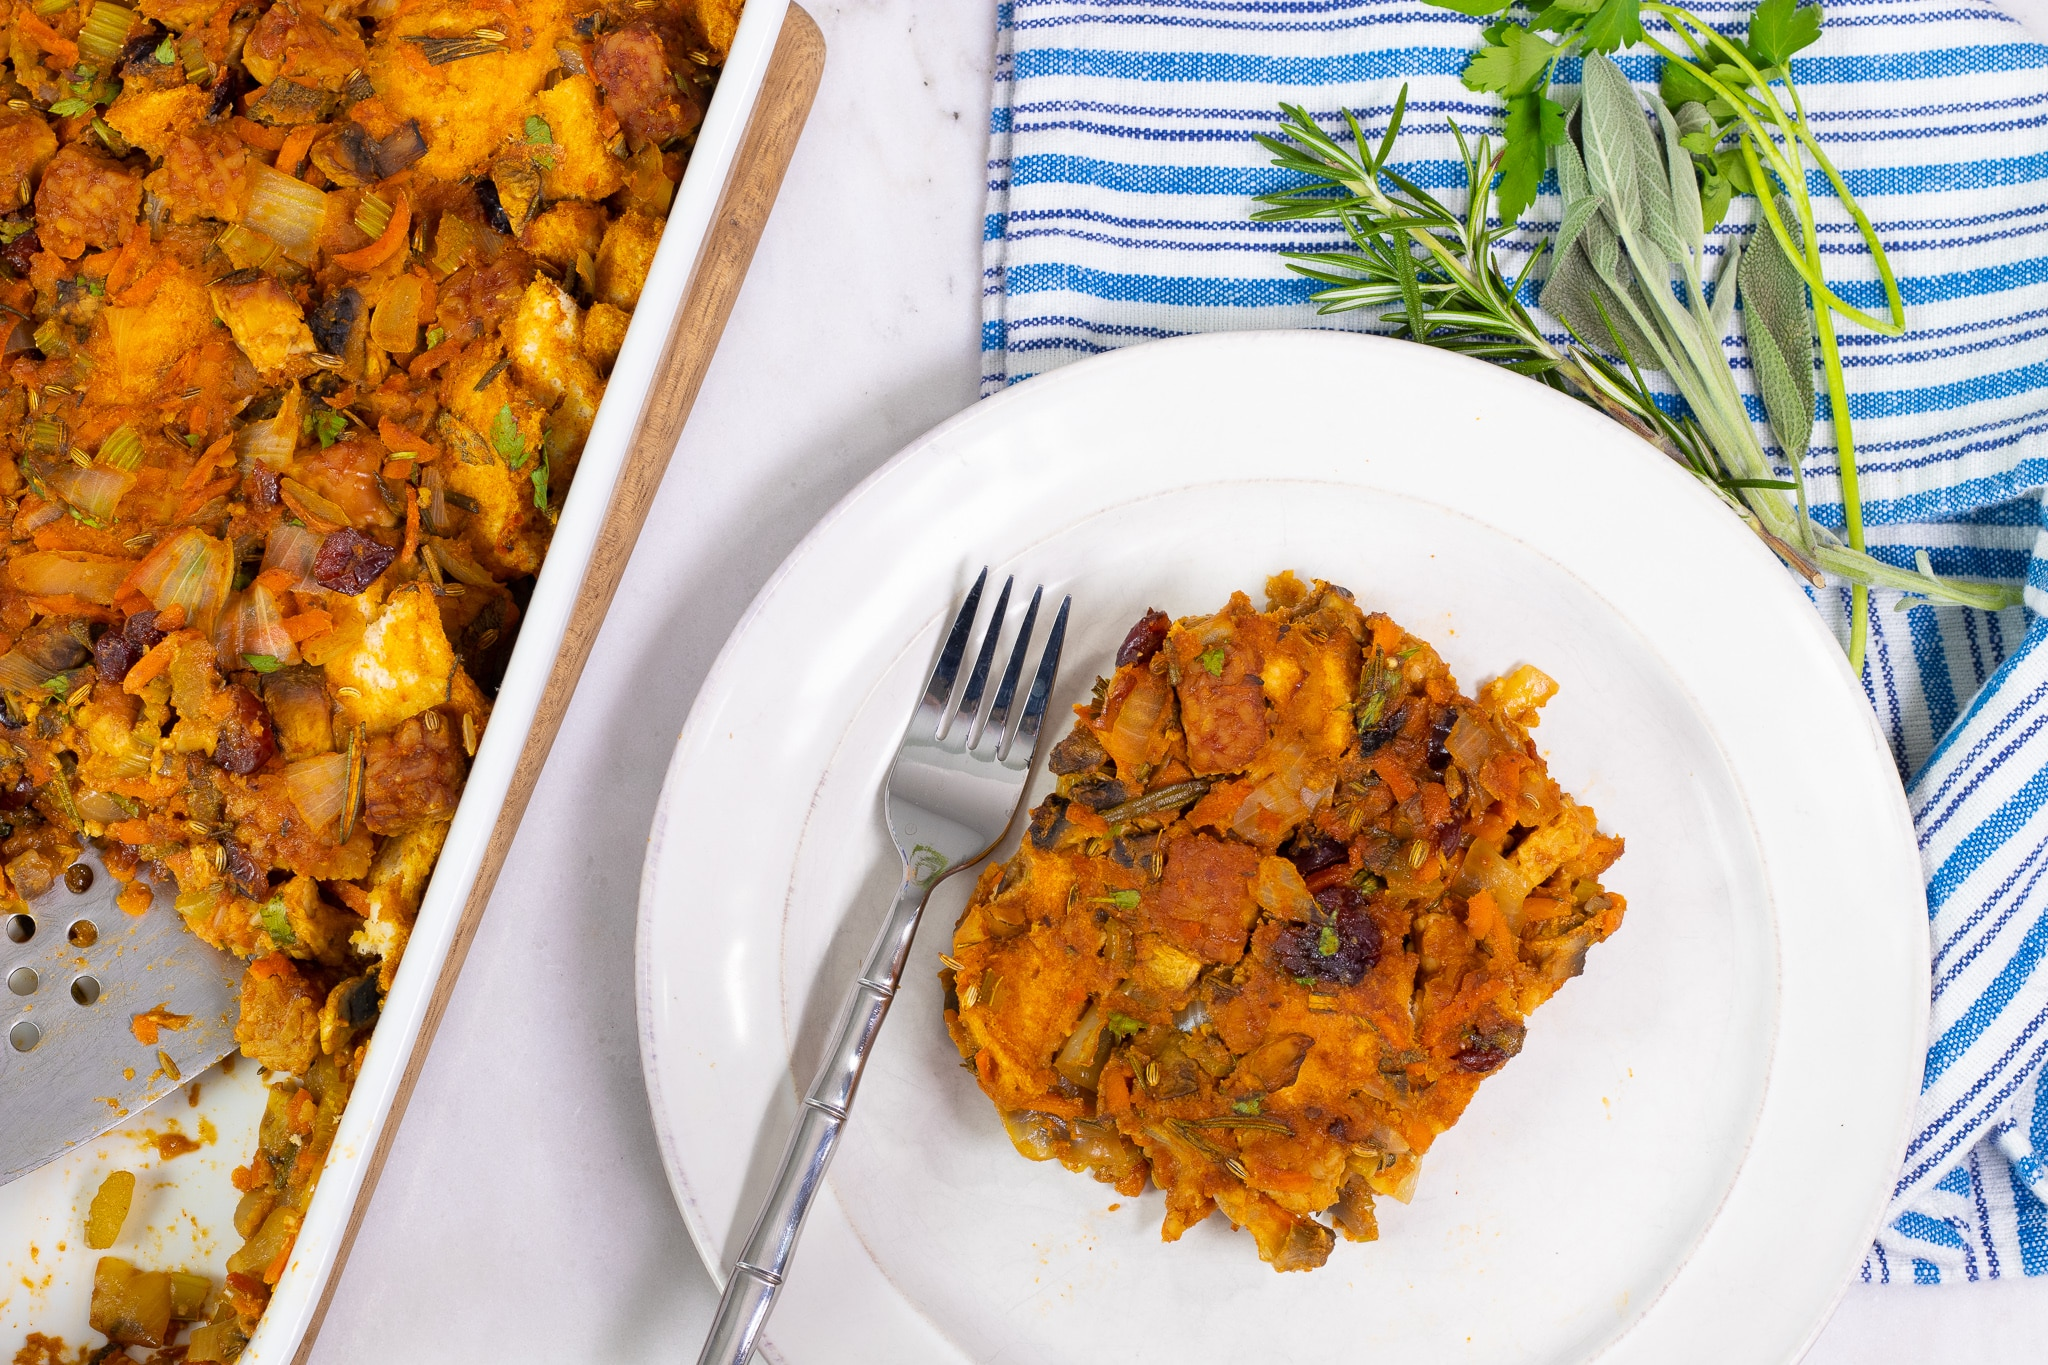 Gluten-Free Holiday Stuffing with Tempeh Sausage and Veggies